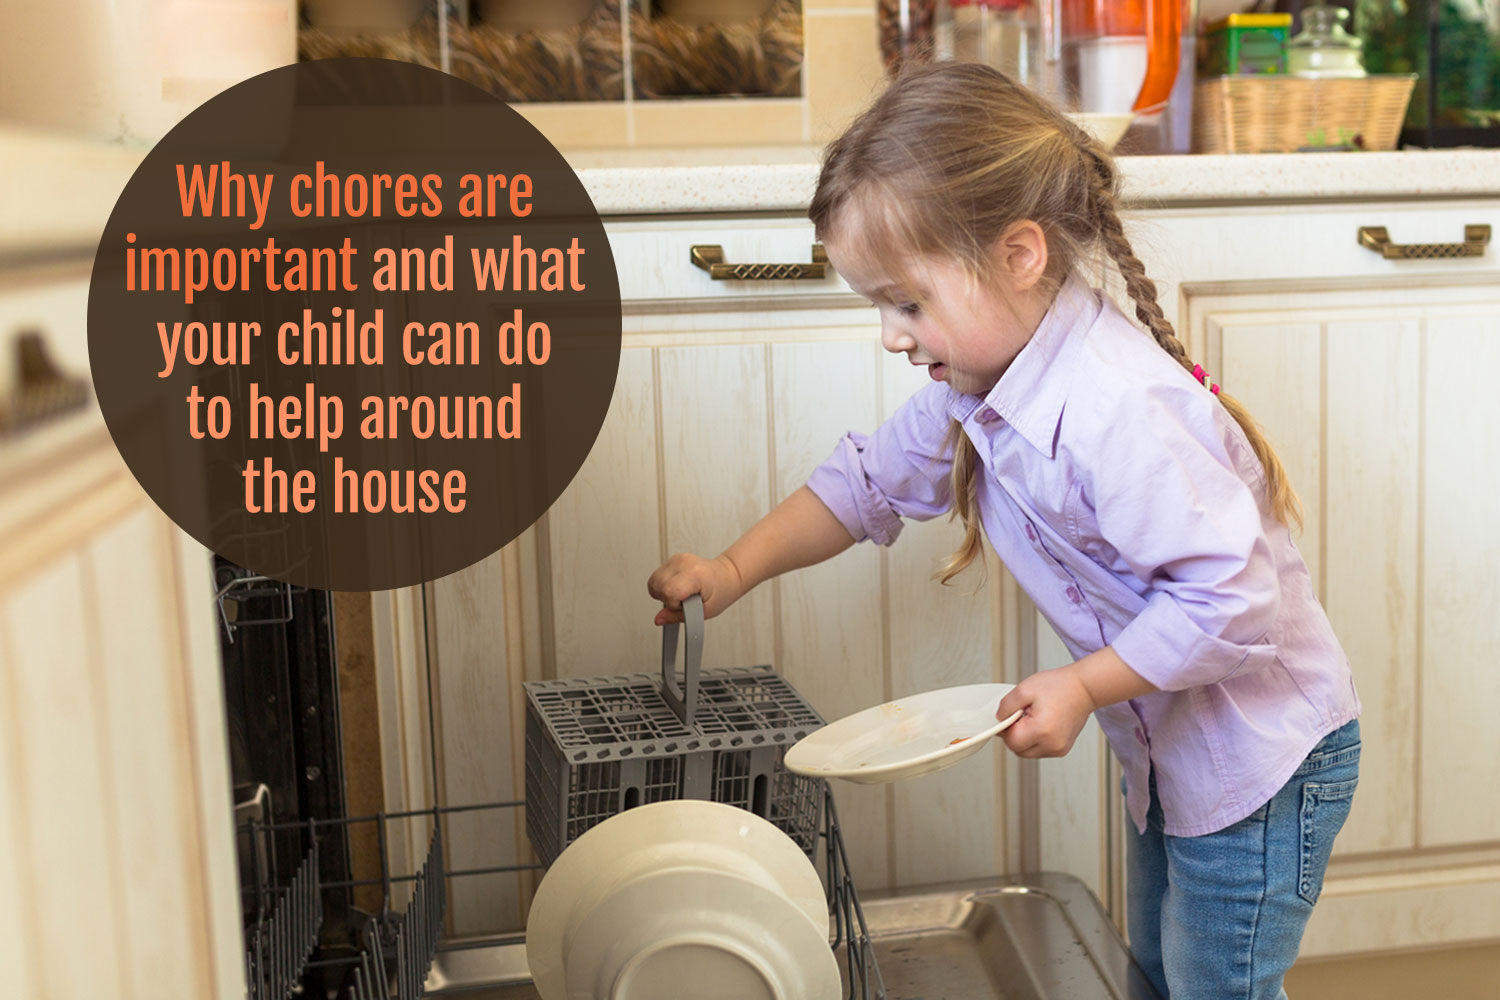 Fall Chores: After-School Chores to Instill Good Habits Year-Round